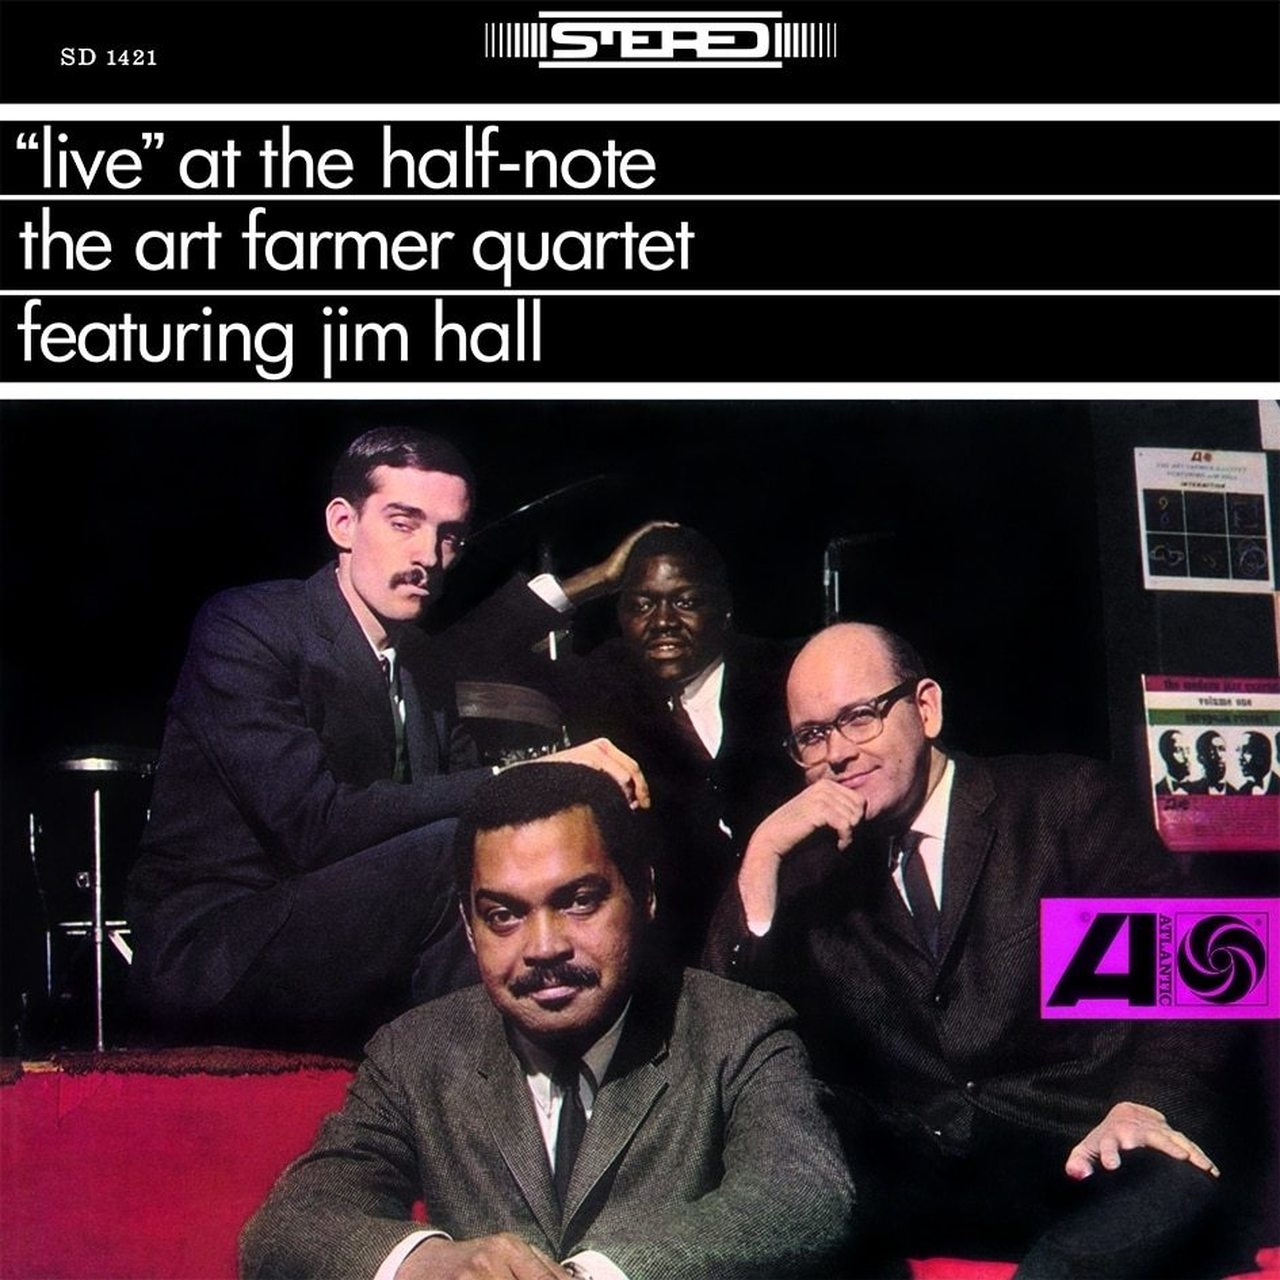 The Art Farmer Quartet Live at the Half-Note feat Jim Hall 180g LP